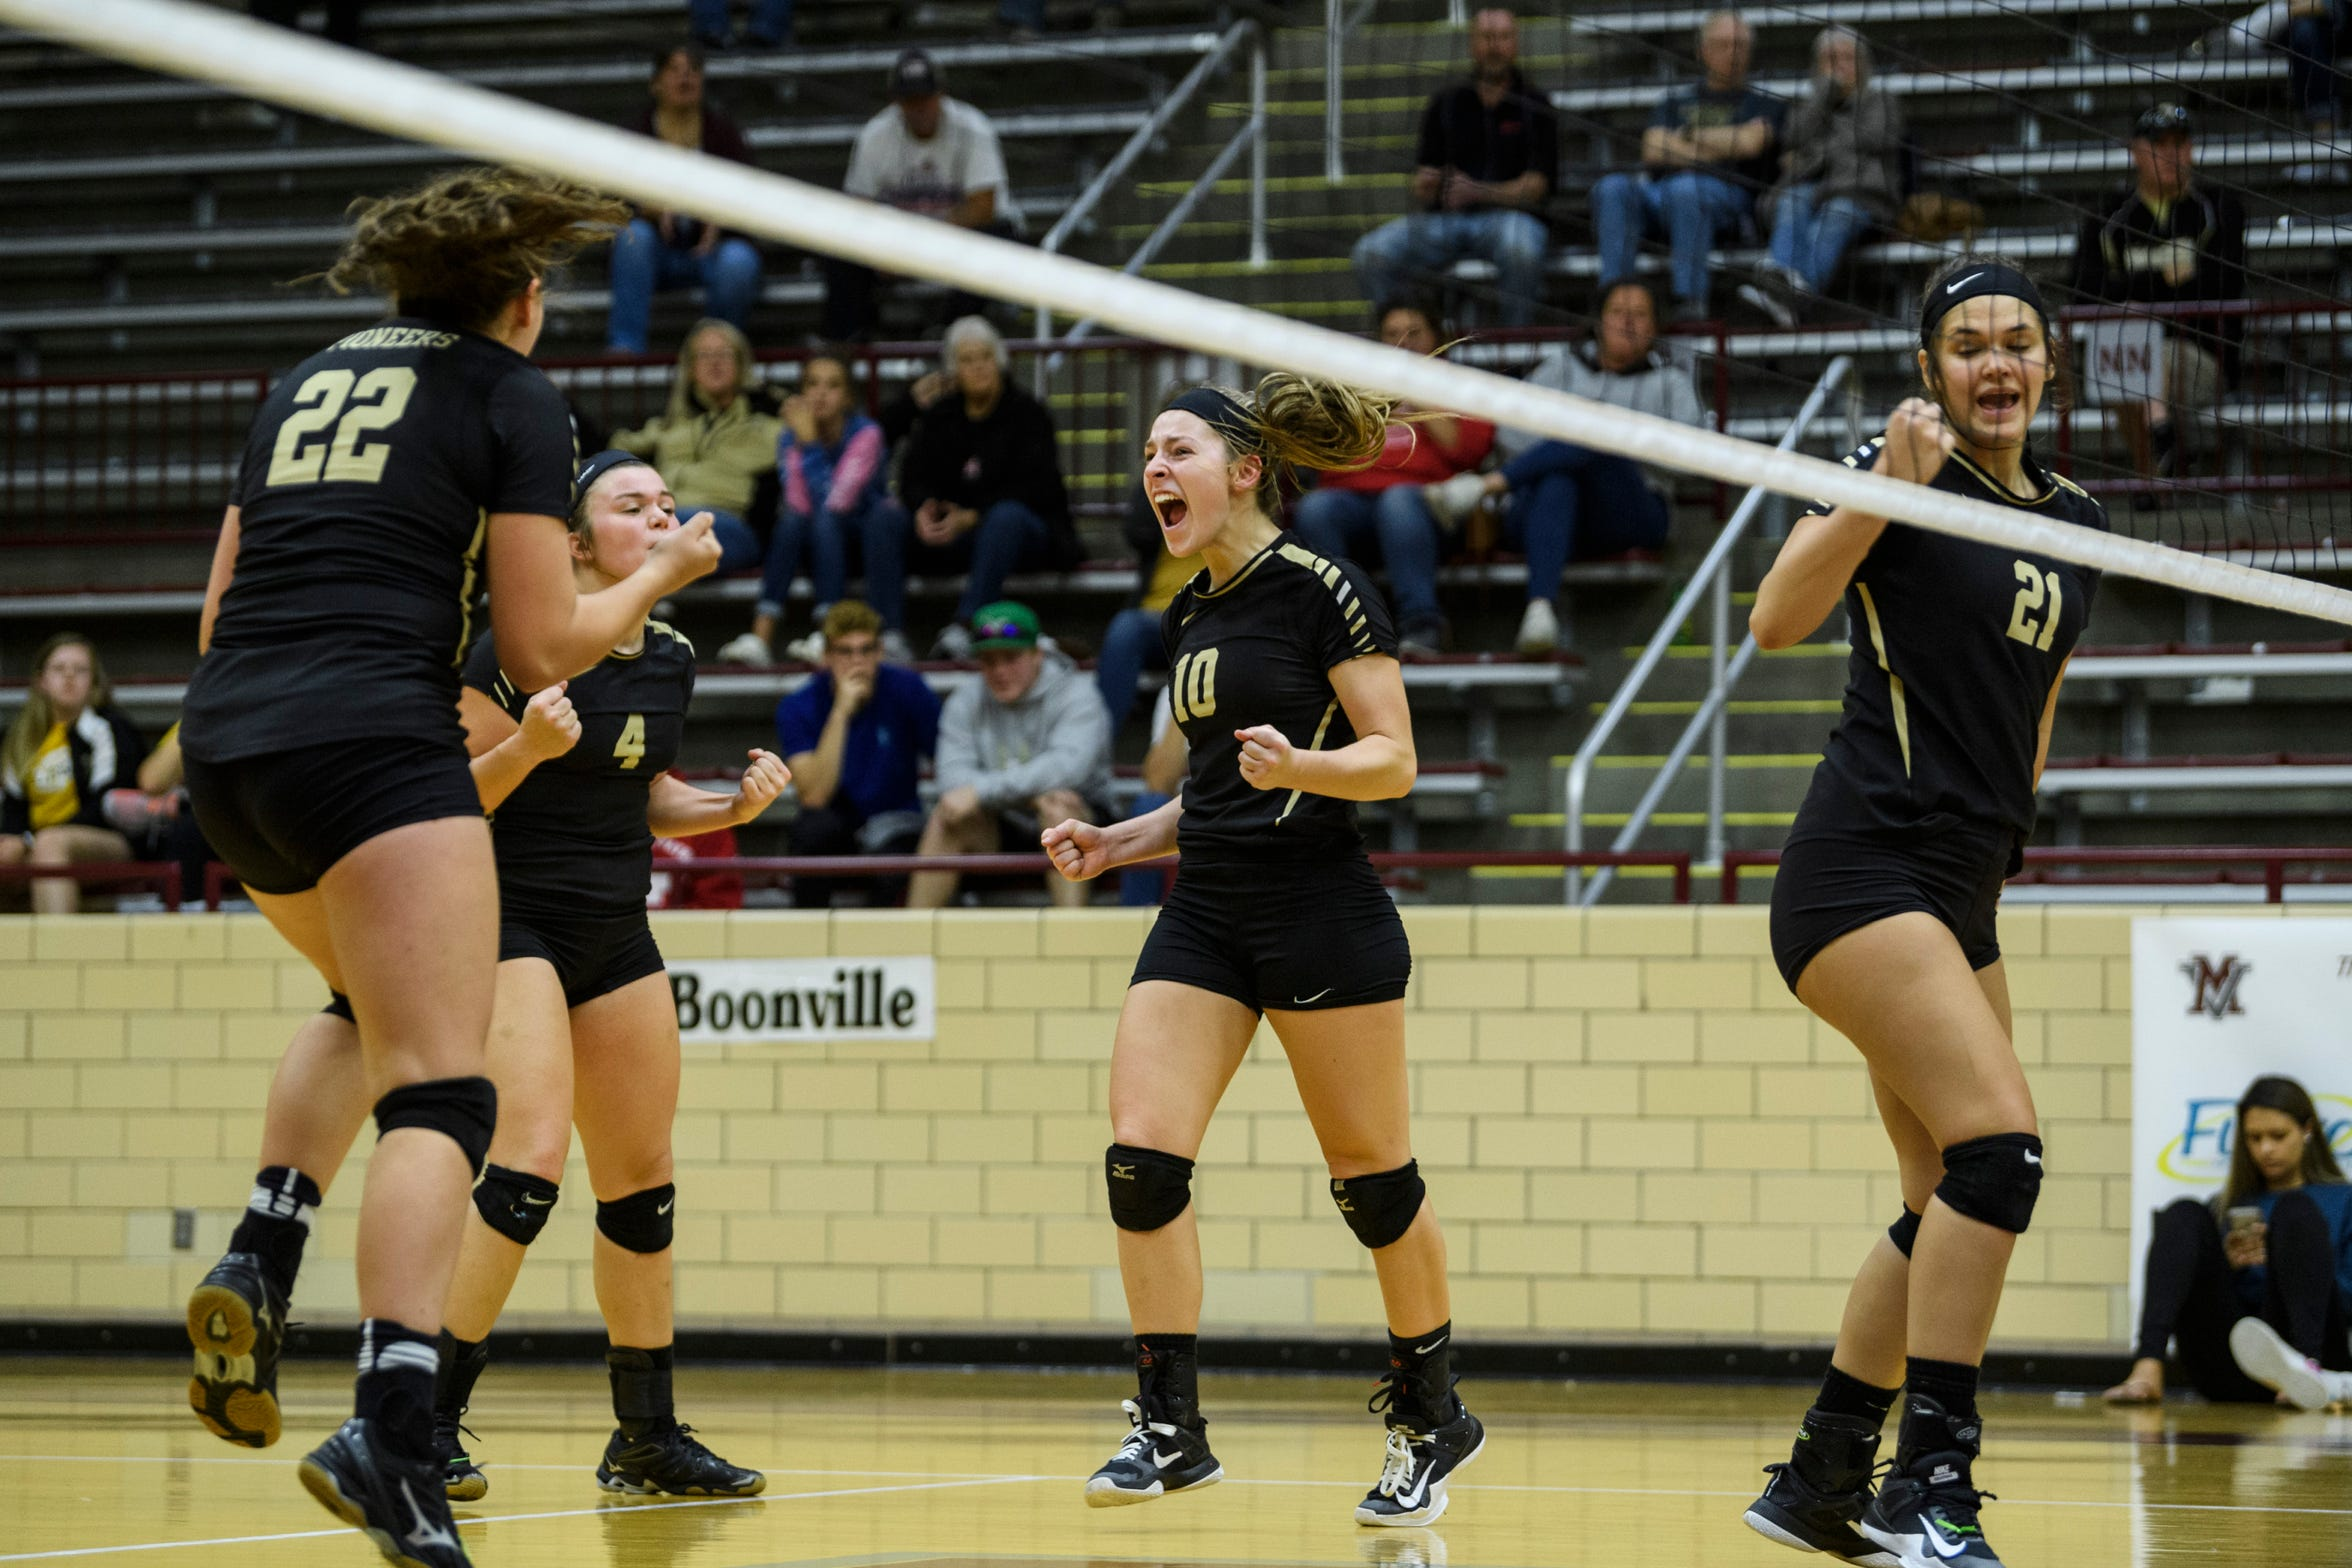 Boonville volleyball players react to a winning point against Memorial in the Class 3A sectional at Mount Vernon last year.